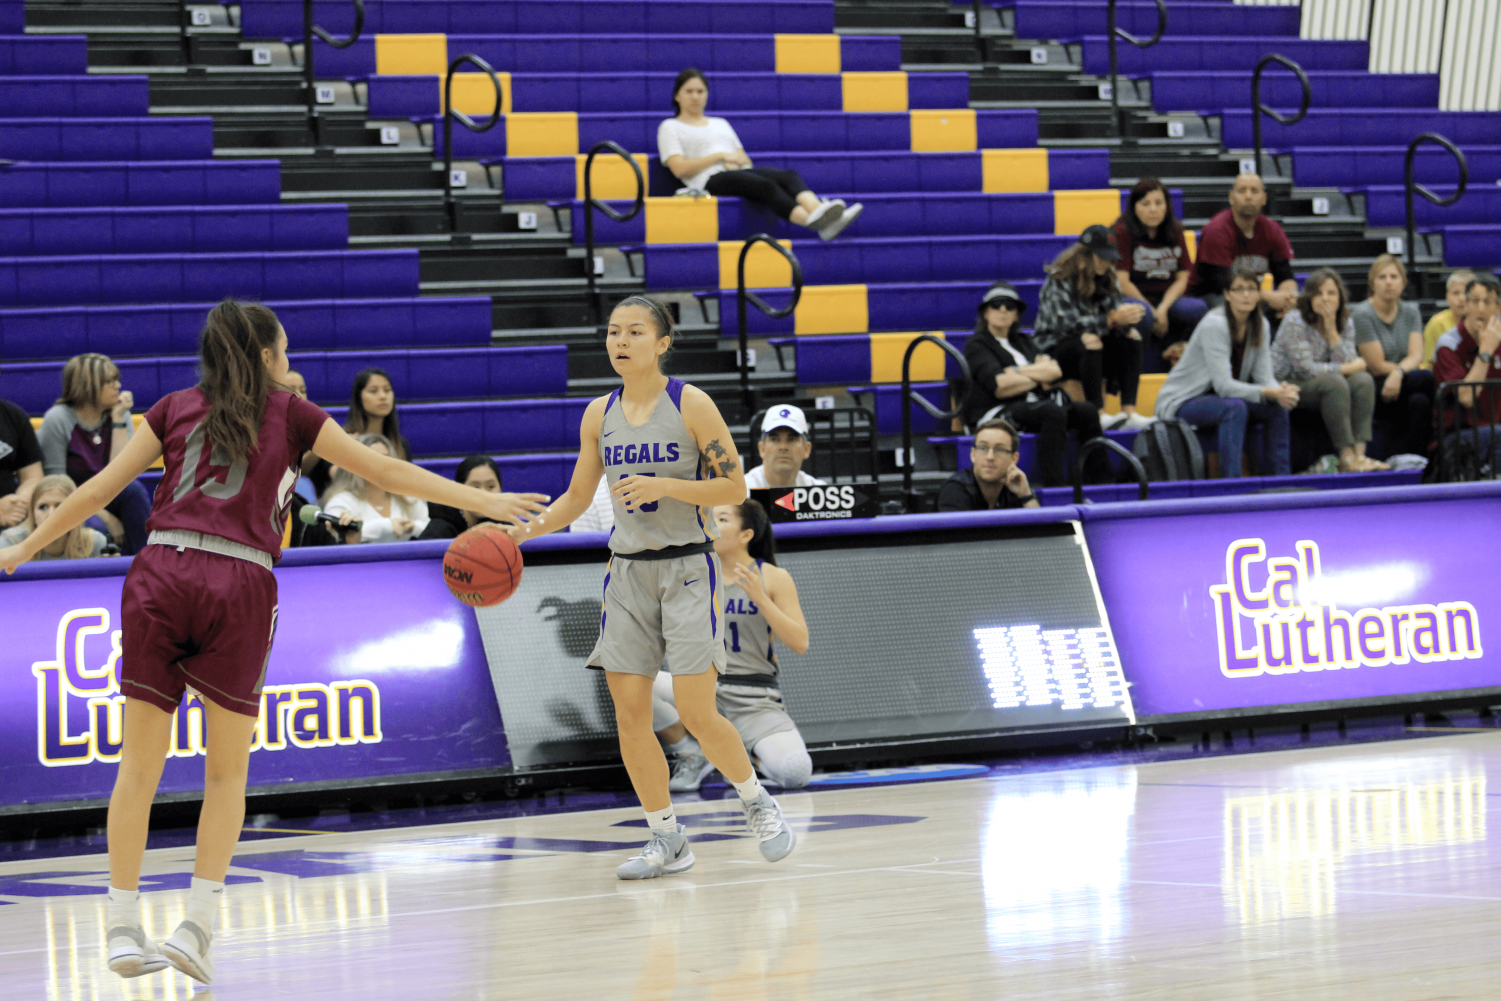 Junior guard Taylor Oshiro scored seven points for the Regals as they faced the Redlands Bulldogs.